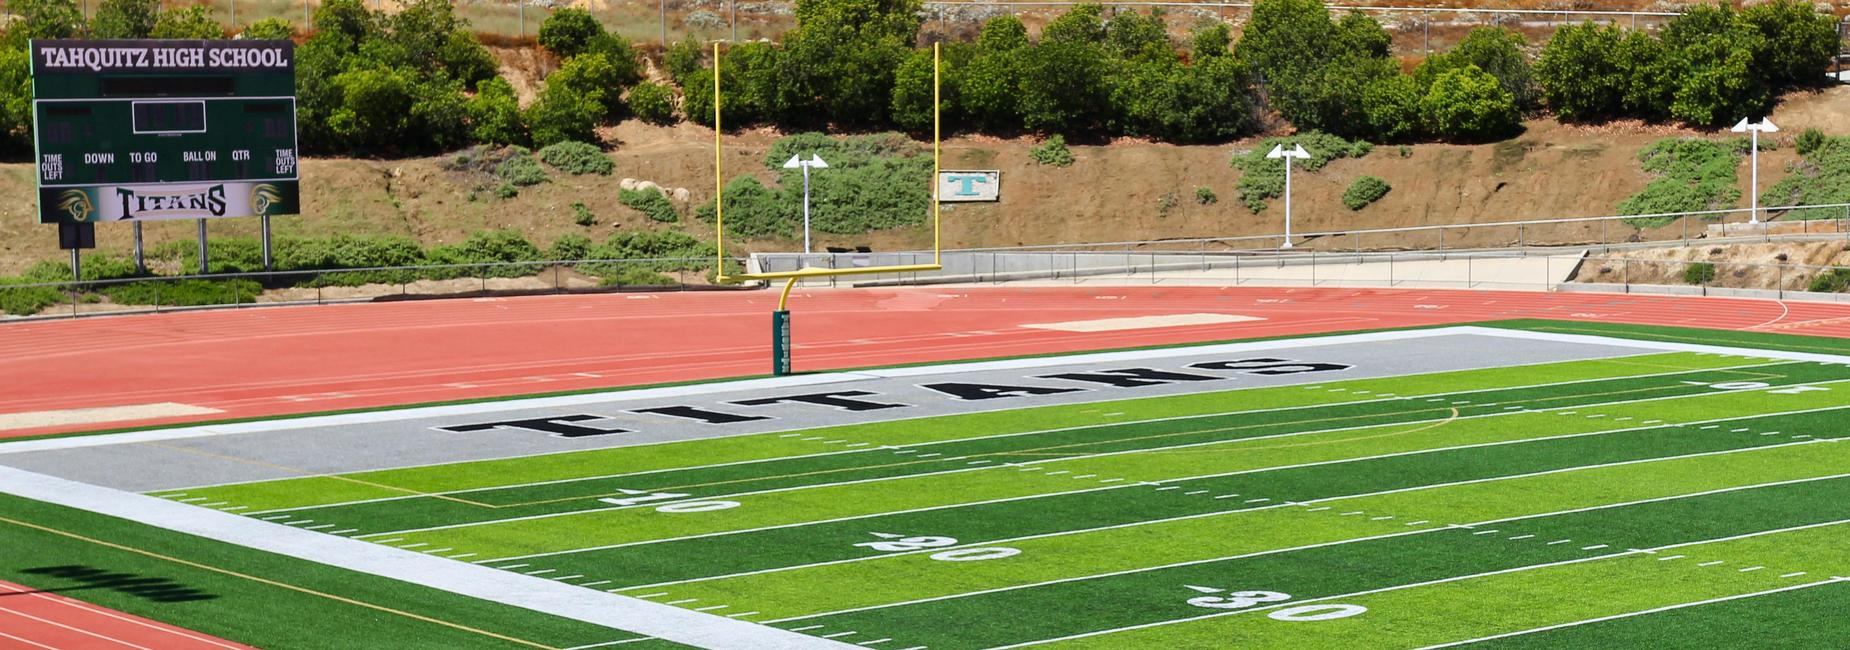 Tahquitz High school football field